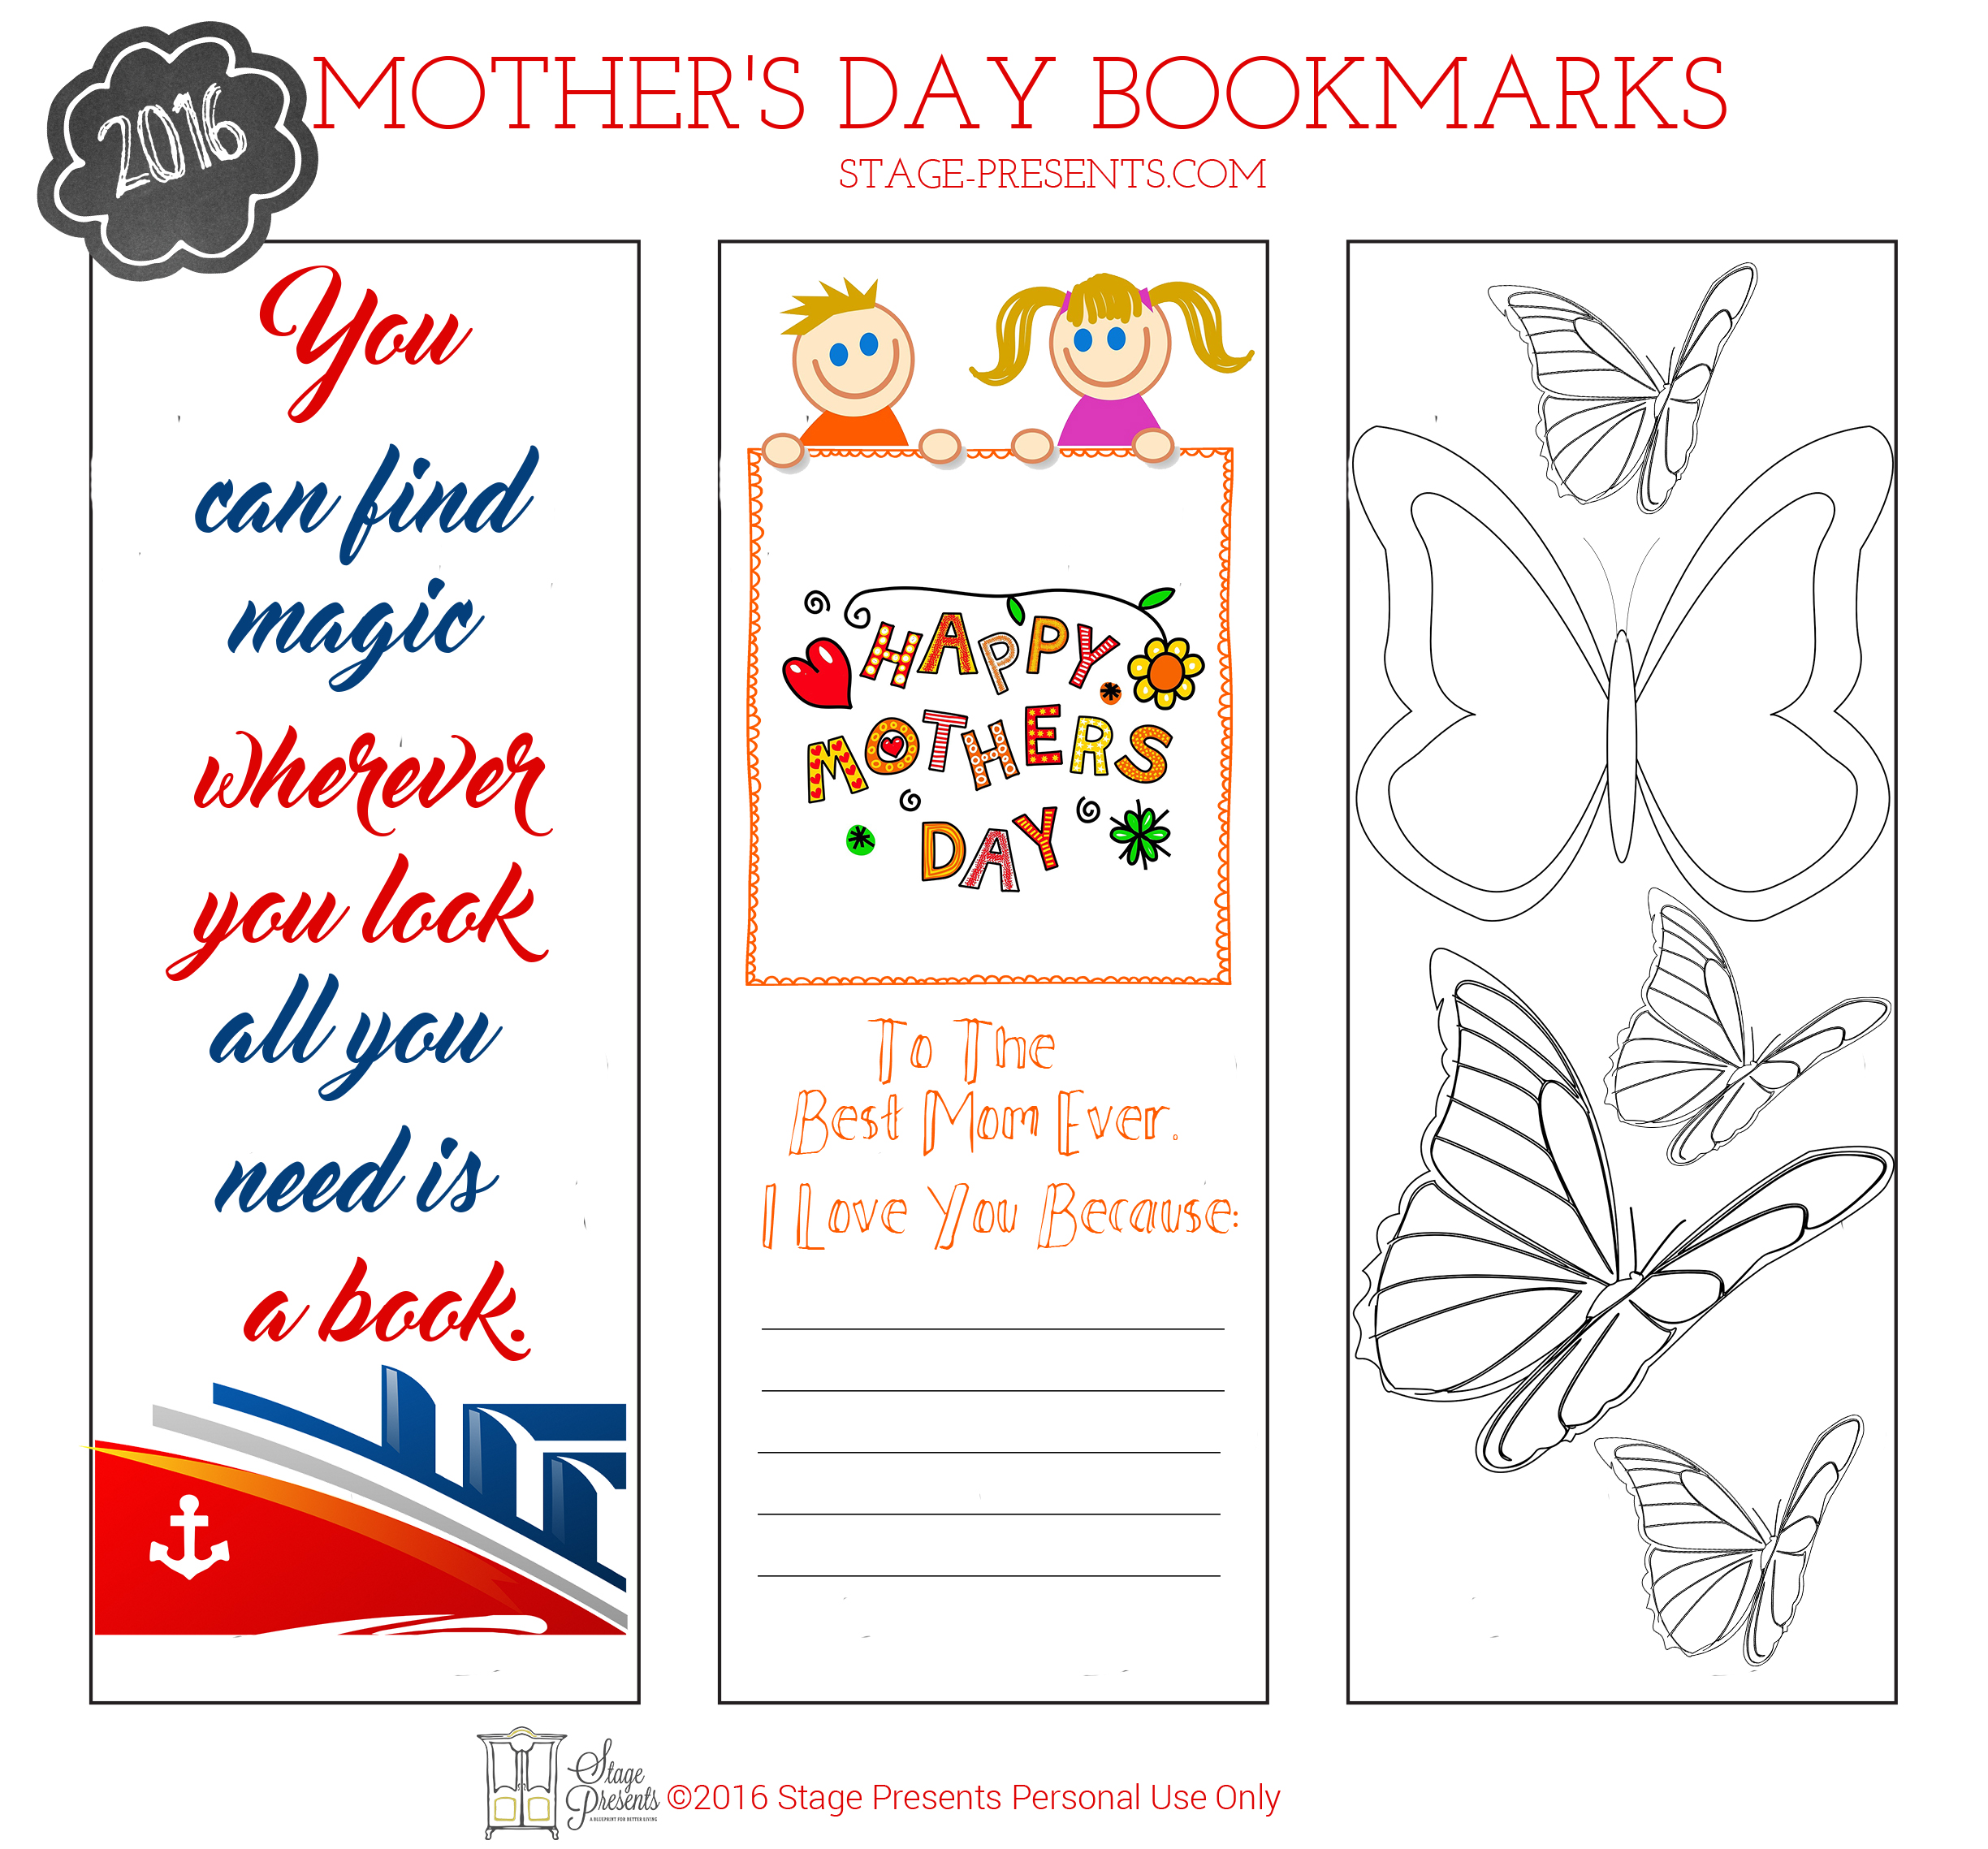 image regarding Mother's Day Bookmarks Printable Free identify Moms Working day Bookmarks - Freebie - Print - Customise